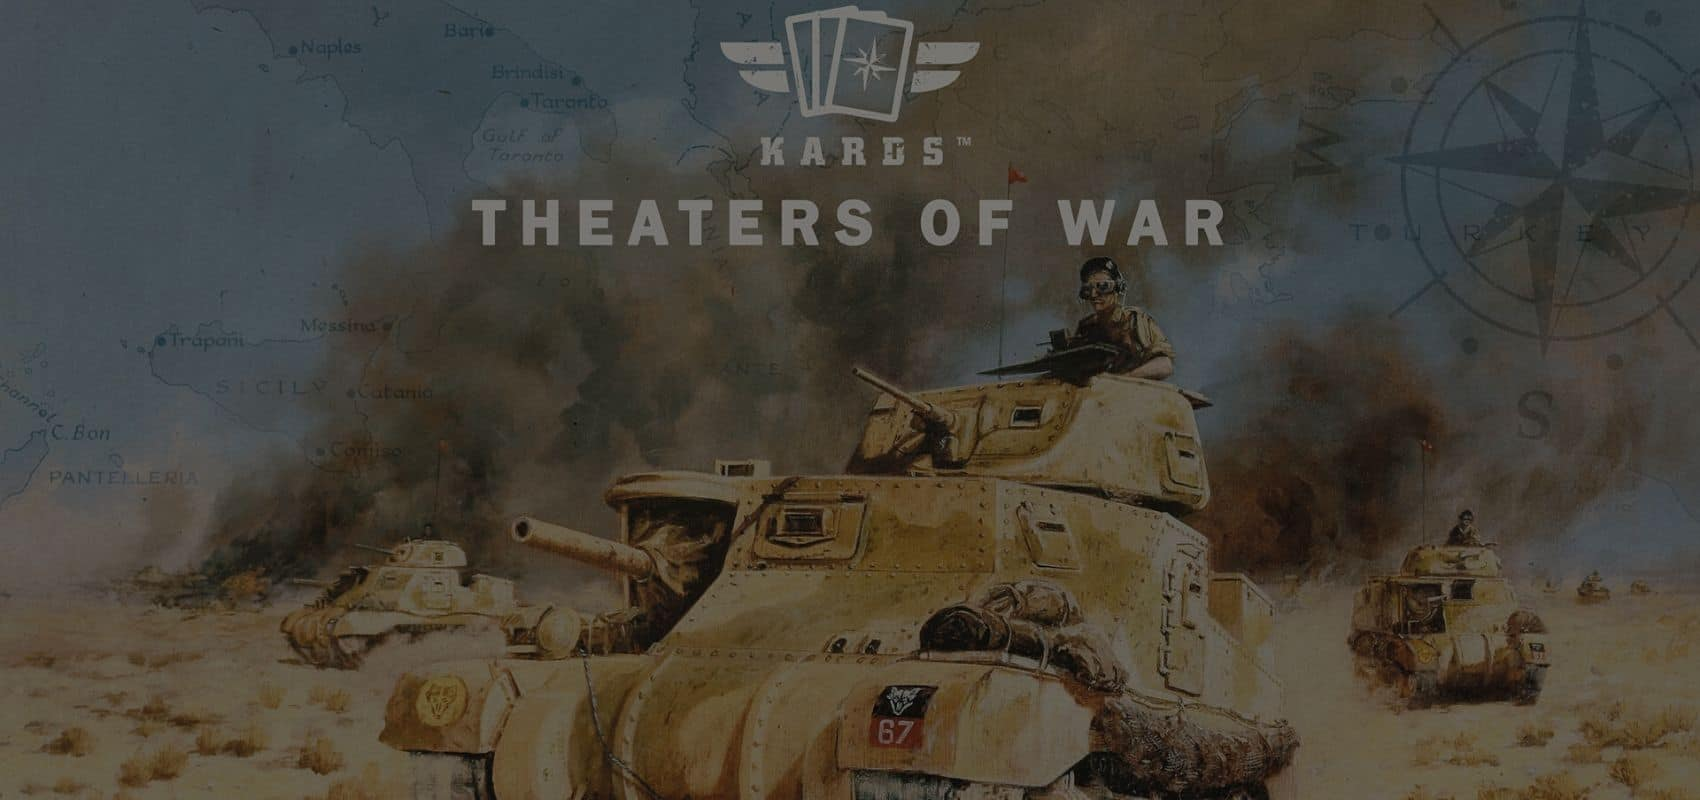 New KARDS expansion Theatres of War adds single-player campaigns